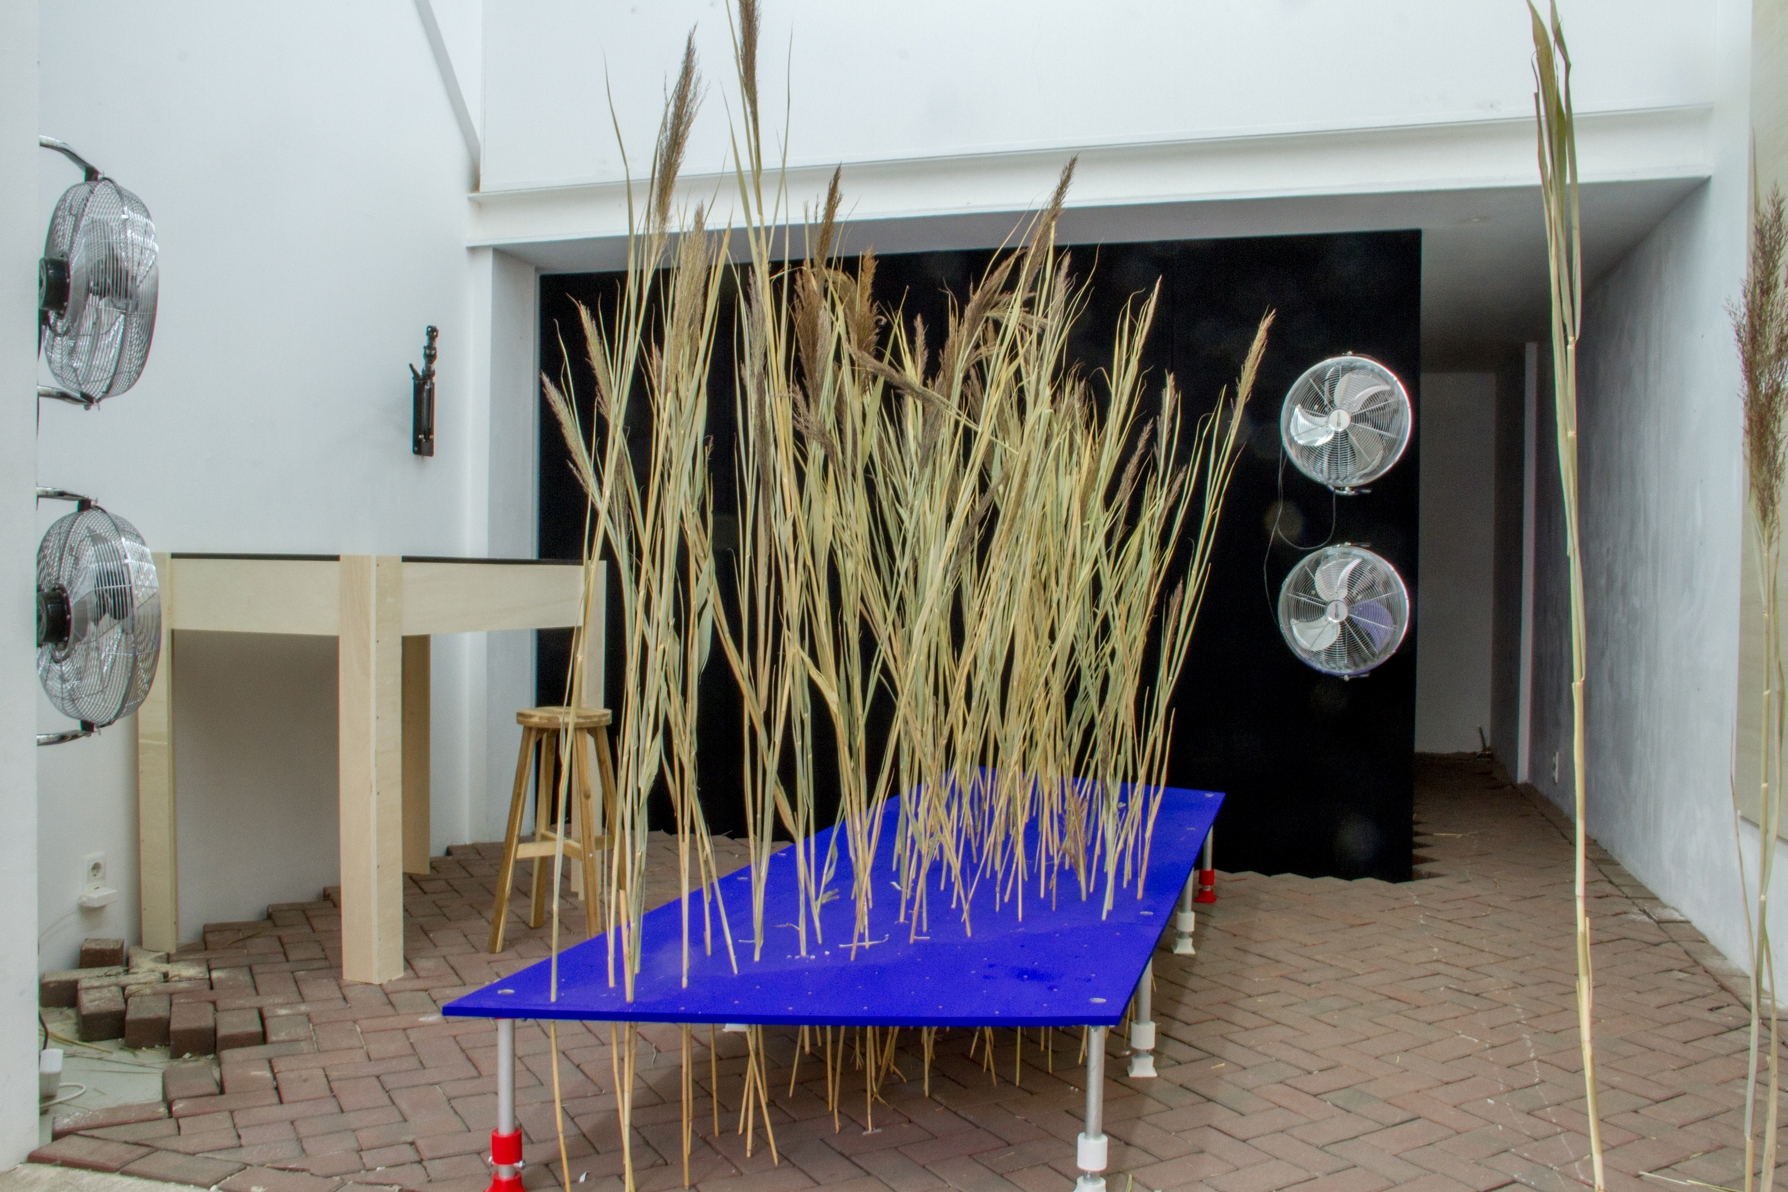 Installation stages 1–3: Reeds. Photo: Rib